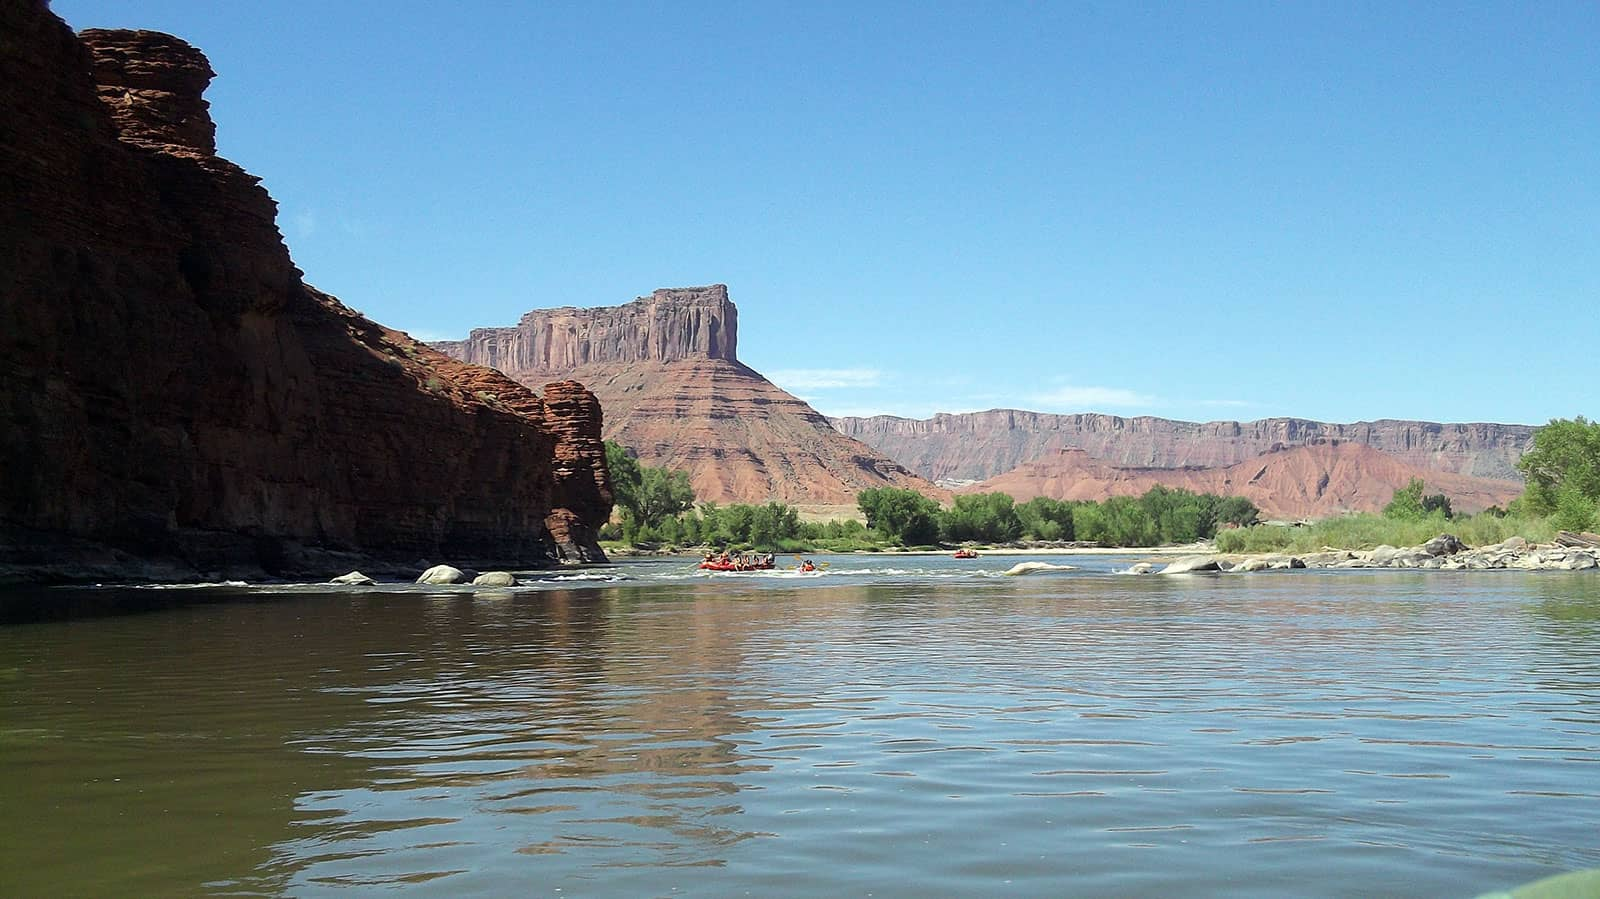 Rafting on the Colorado River2